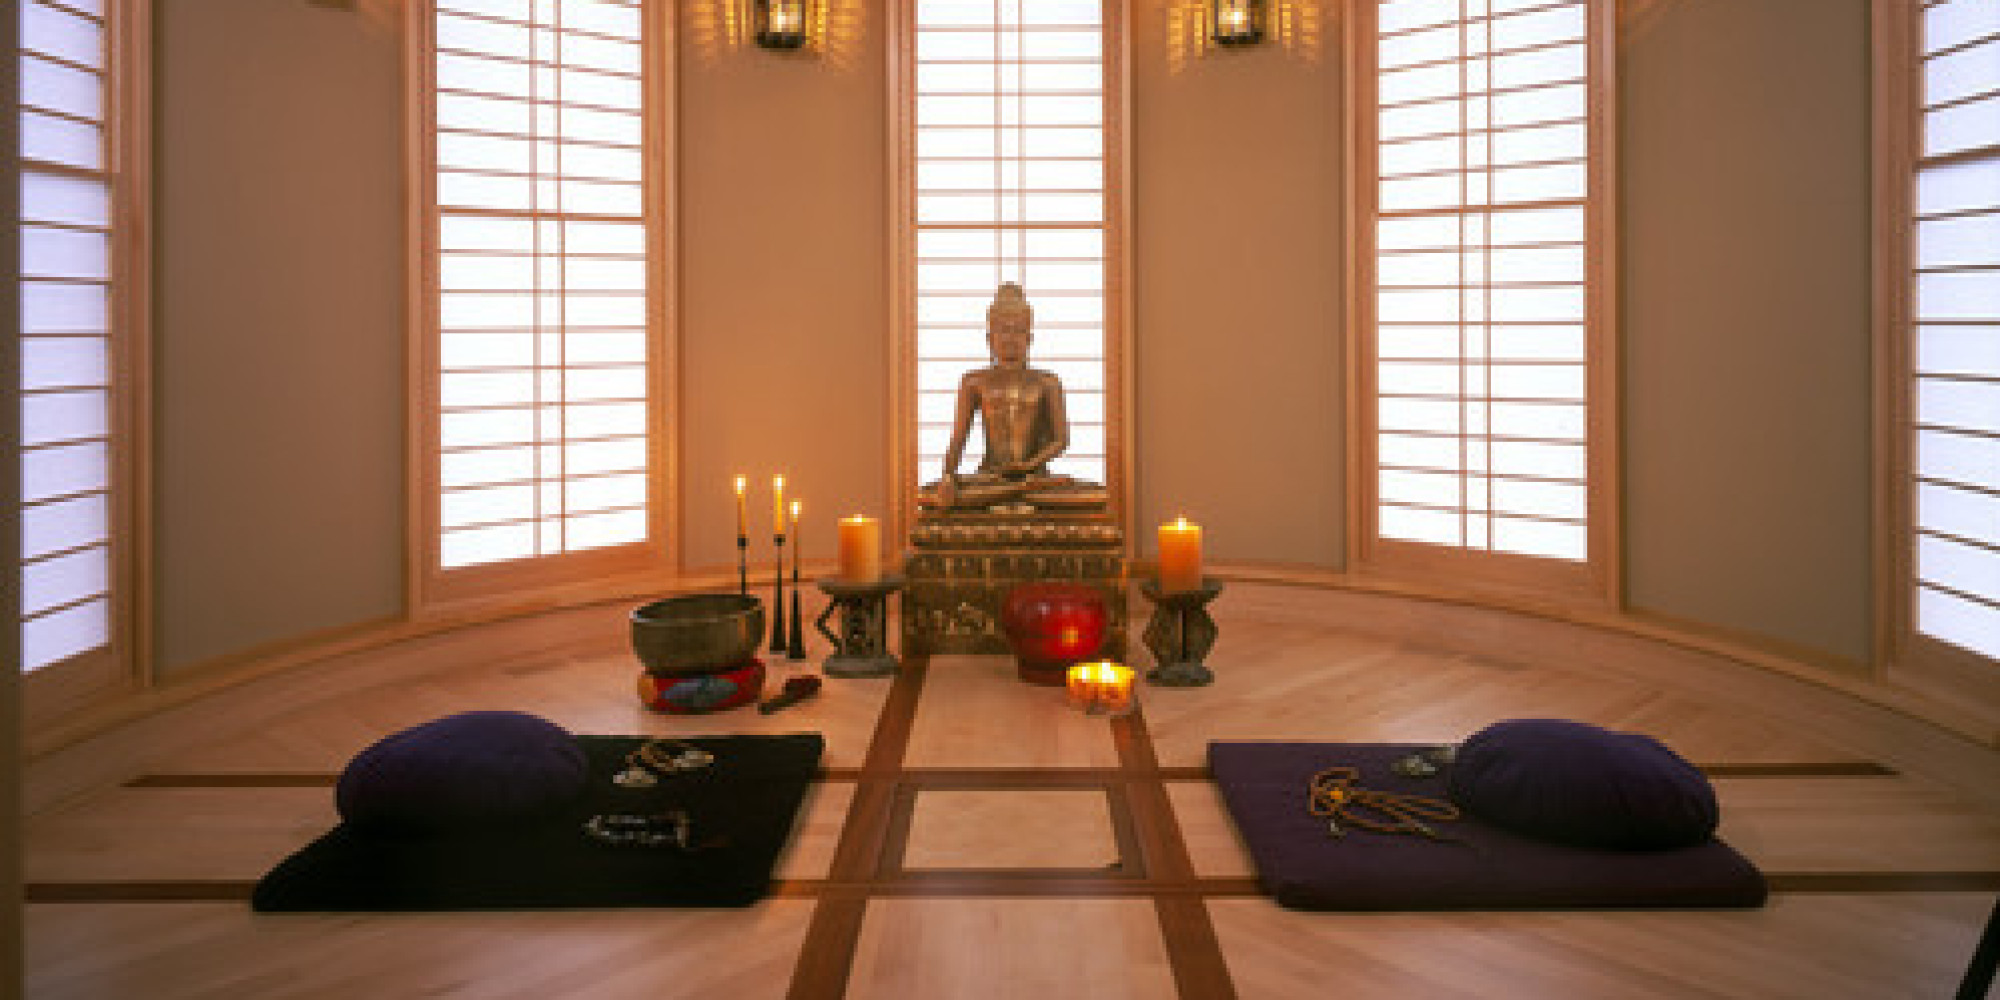 7 spaces that would make great meditation rooms photos for Channel 10 the living room facebook